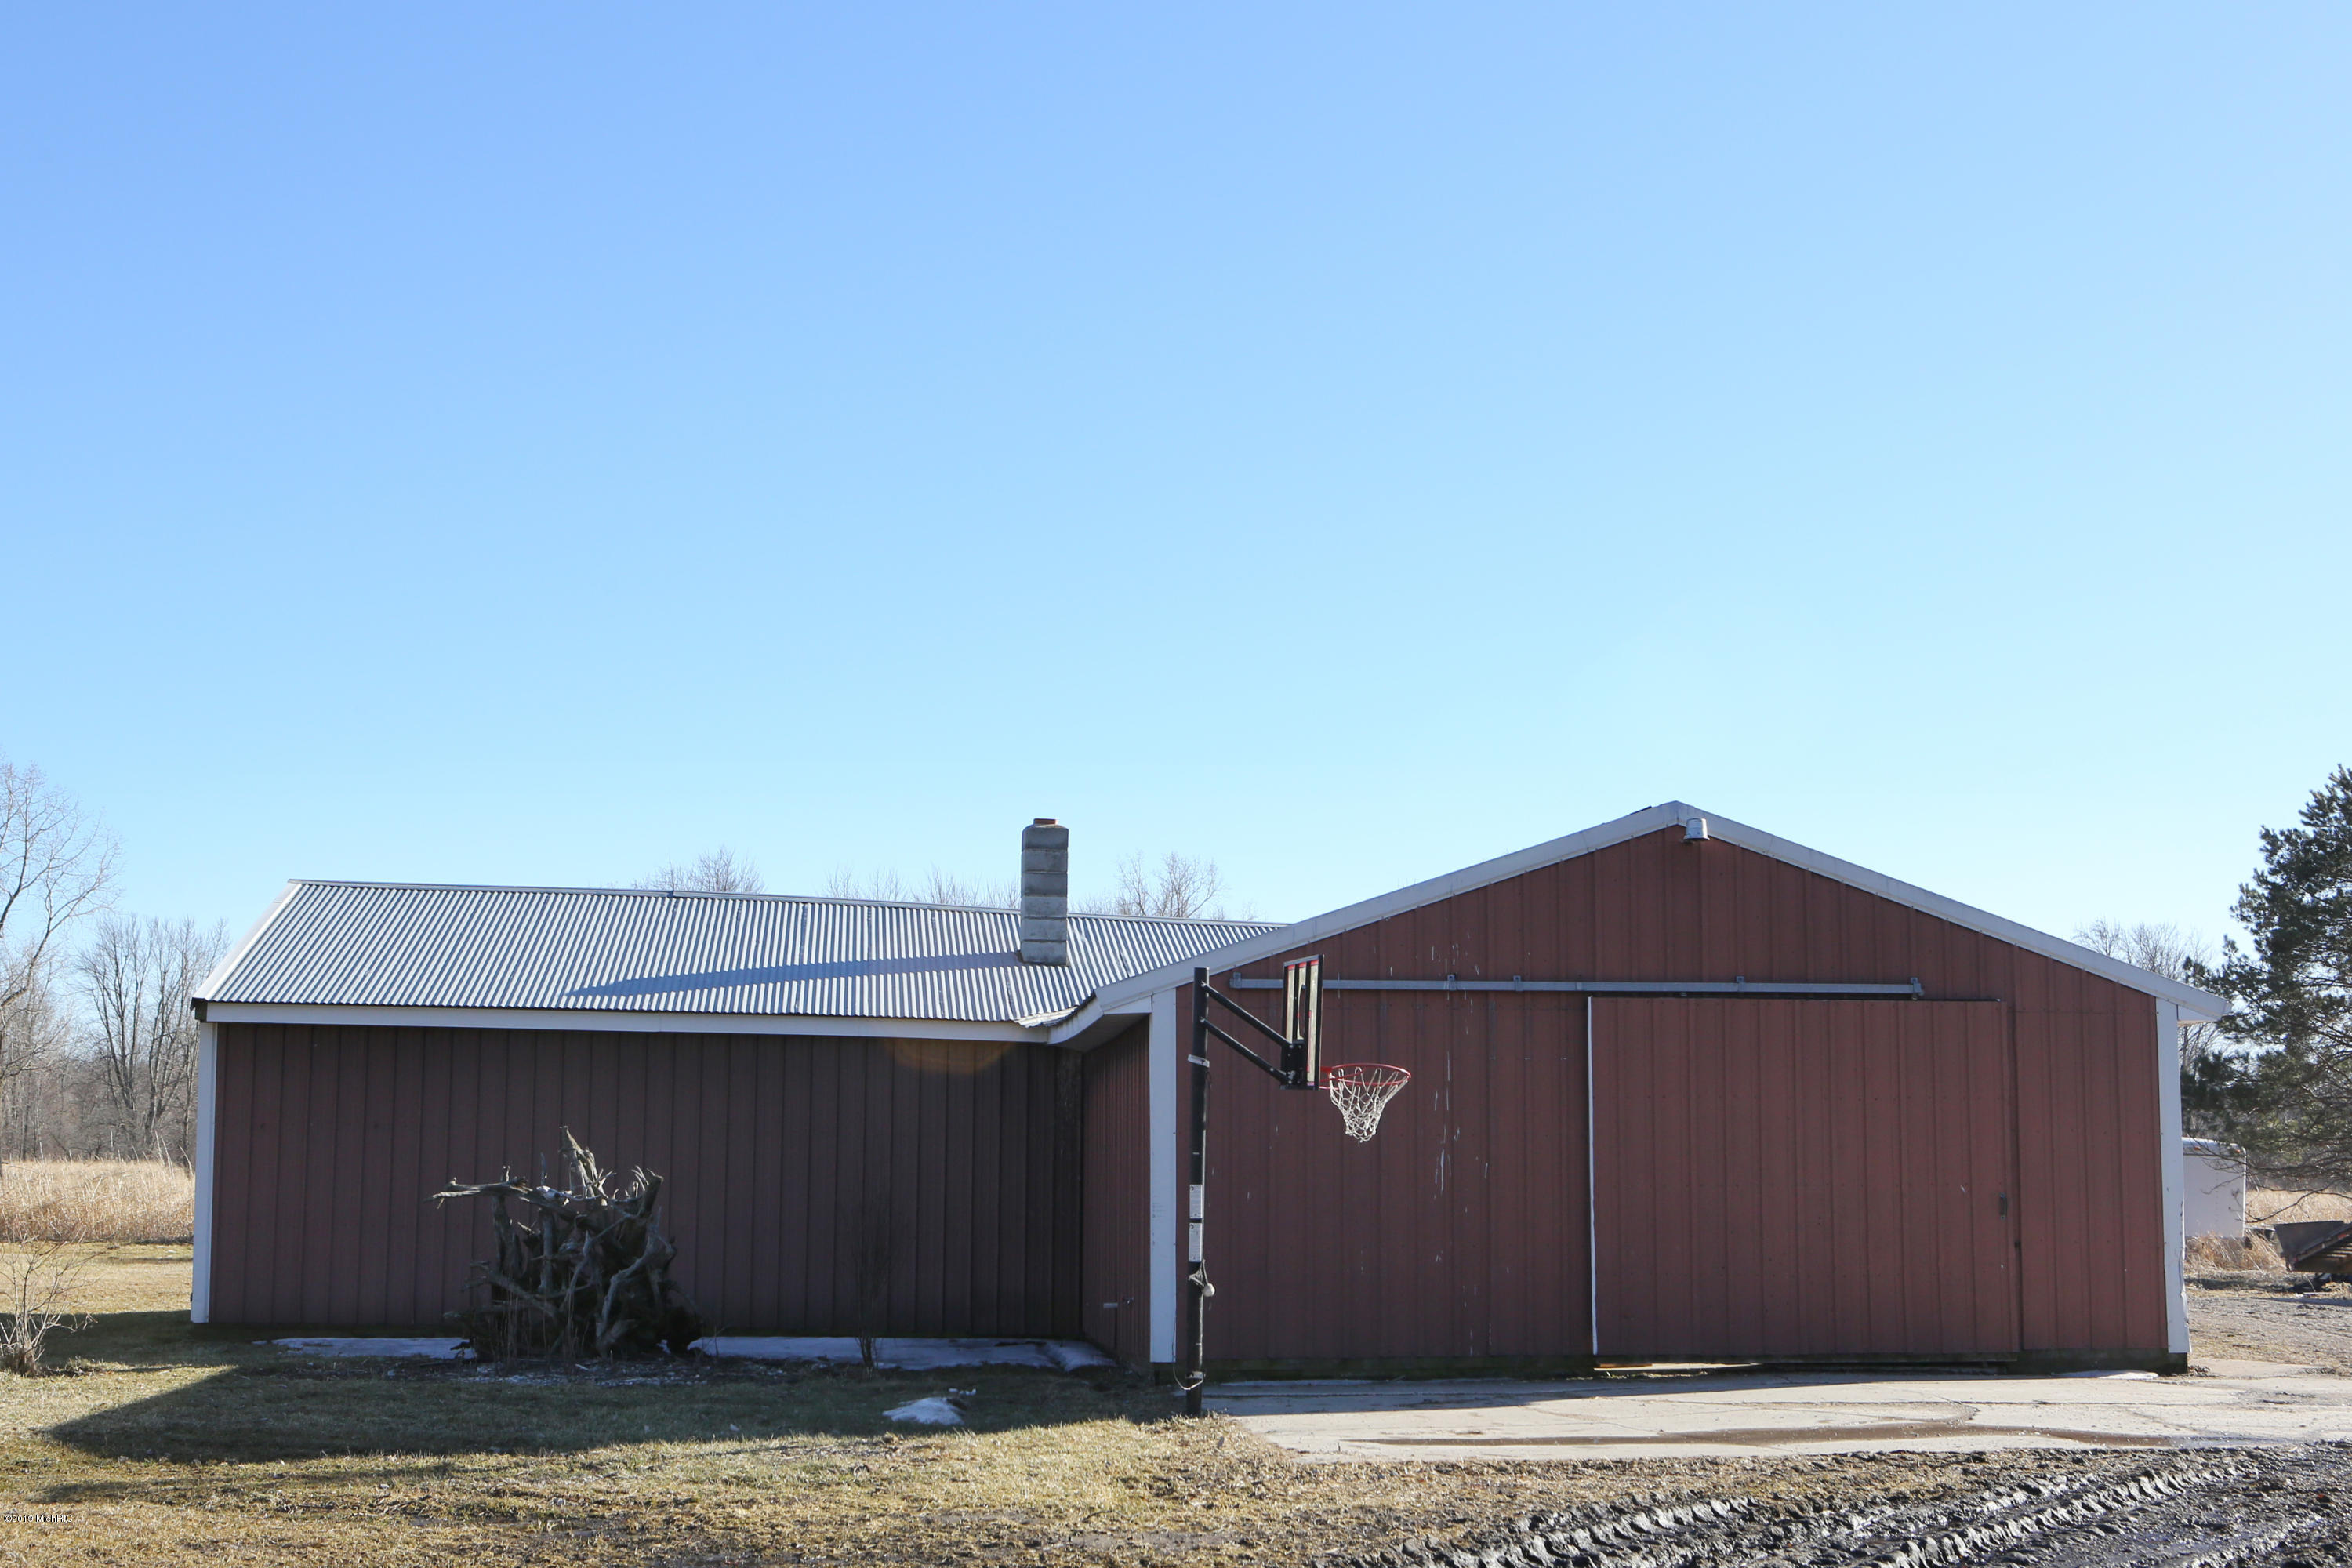 1289 Church Road NW, Edmore, 48829, MLS # 19010641 | Greenridge Realty, Inc